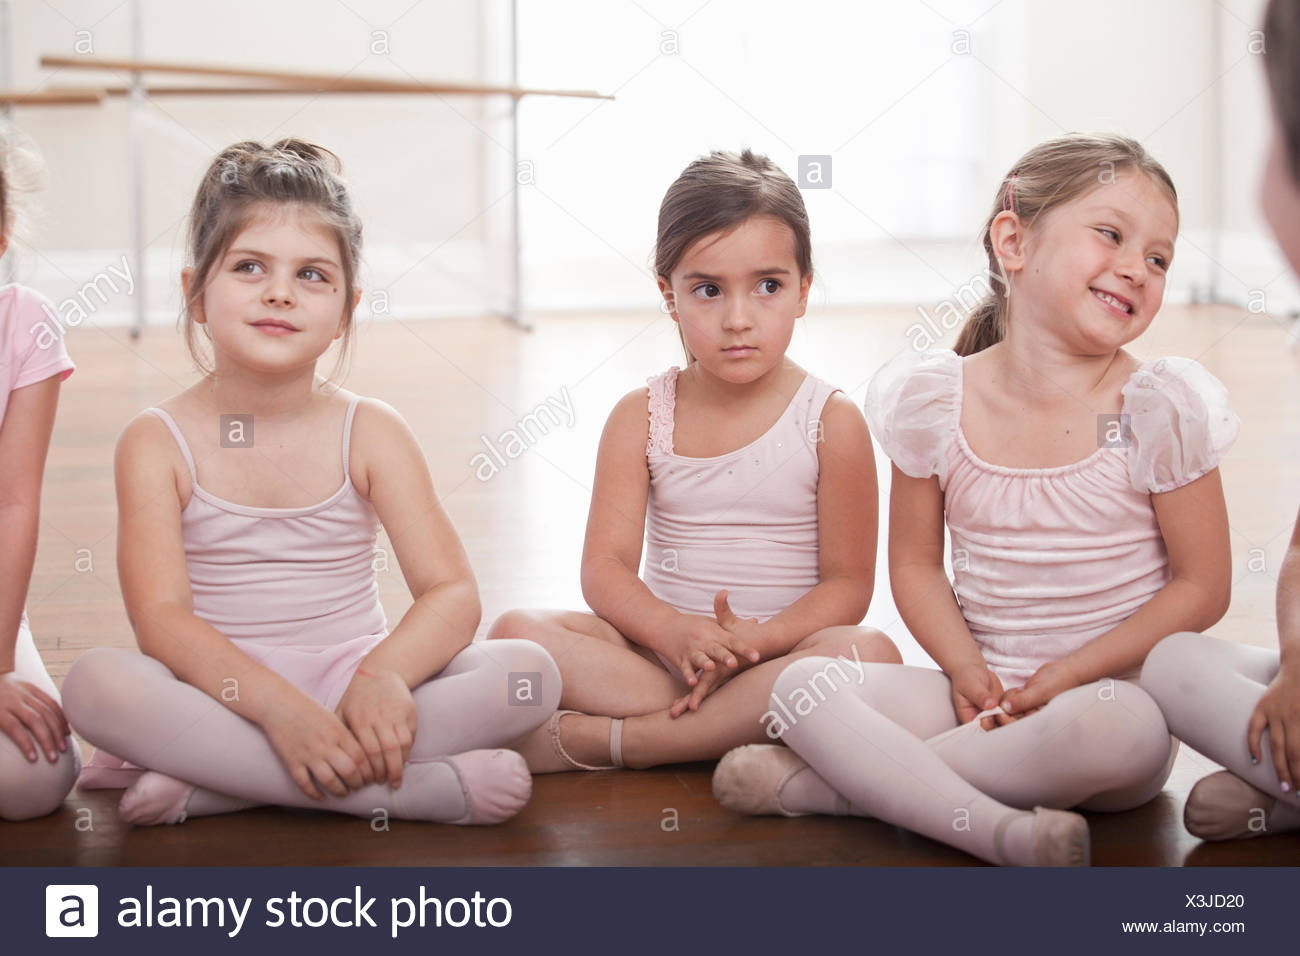 Group of girls sitting on floor in ballet school - Stock Image